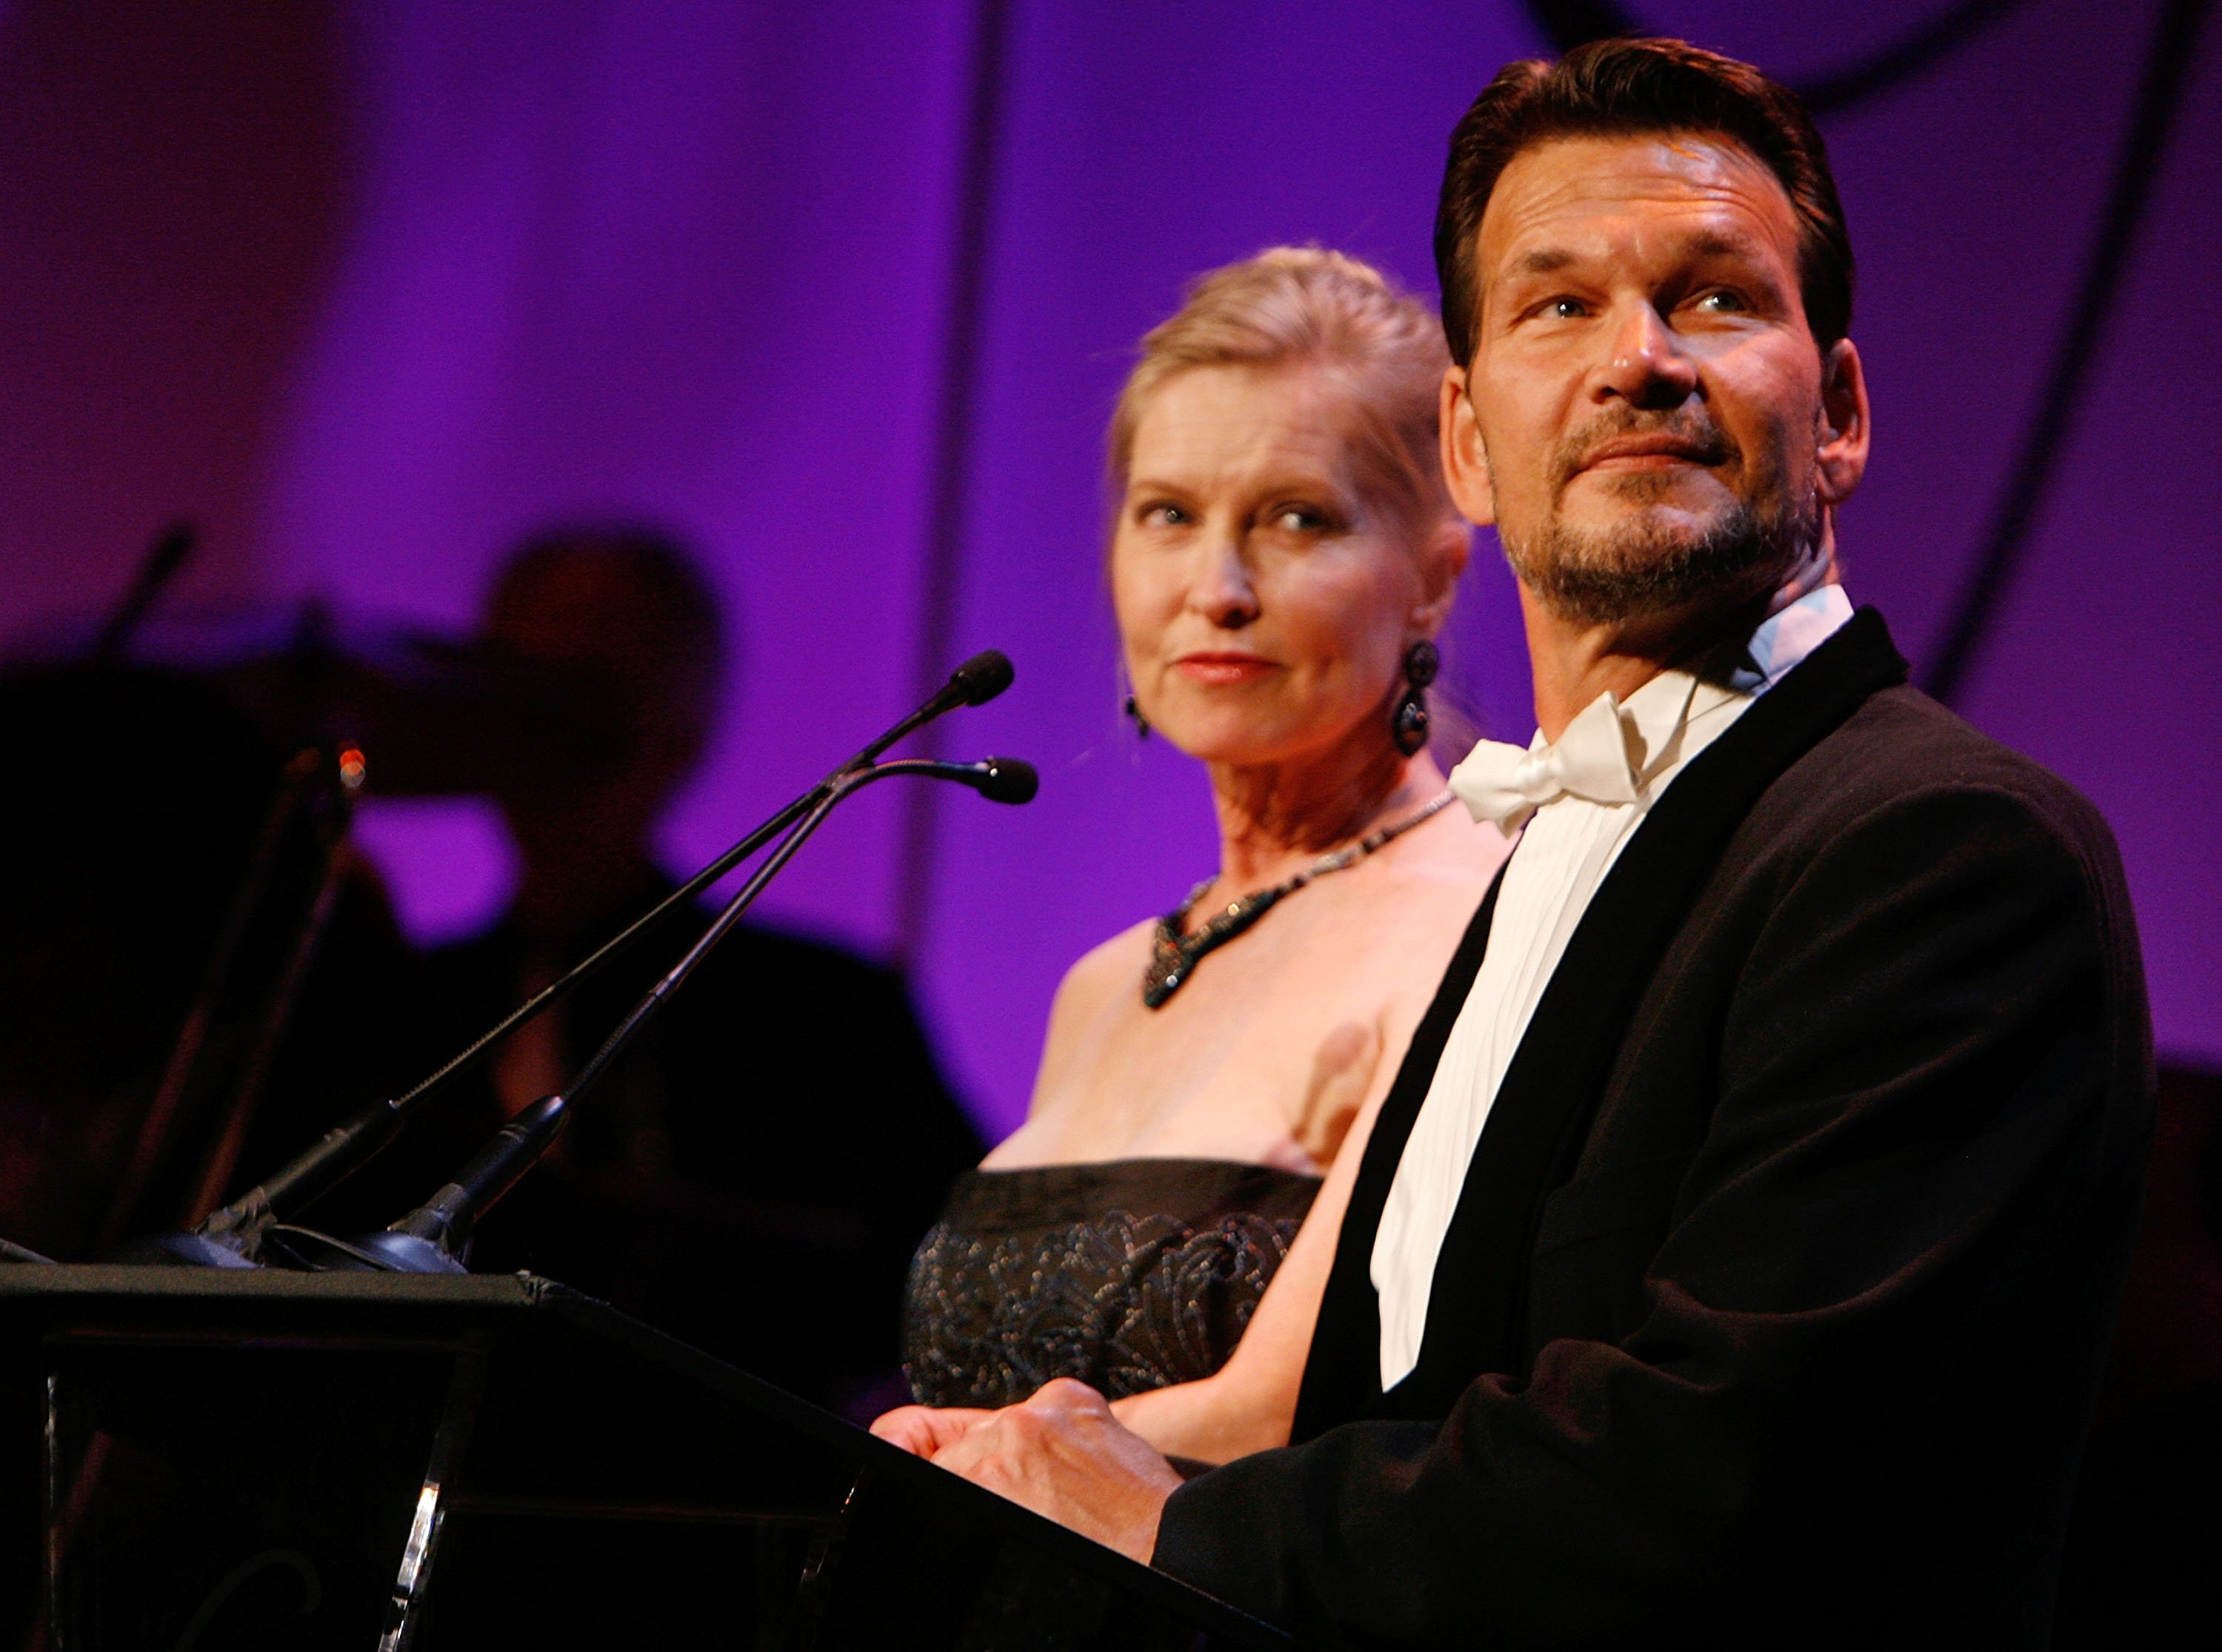 Lisa Niemi and actor Patrick Swayze during the 9th annual Costume Designers Guild Awards on February 17, 2007 | Photo: GettyImages